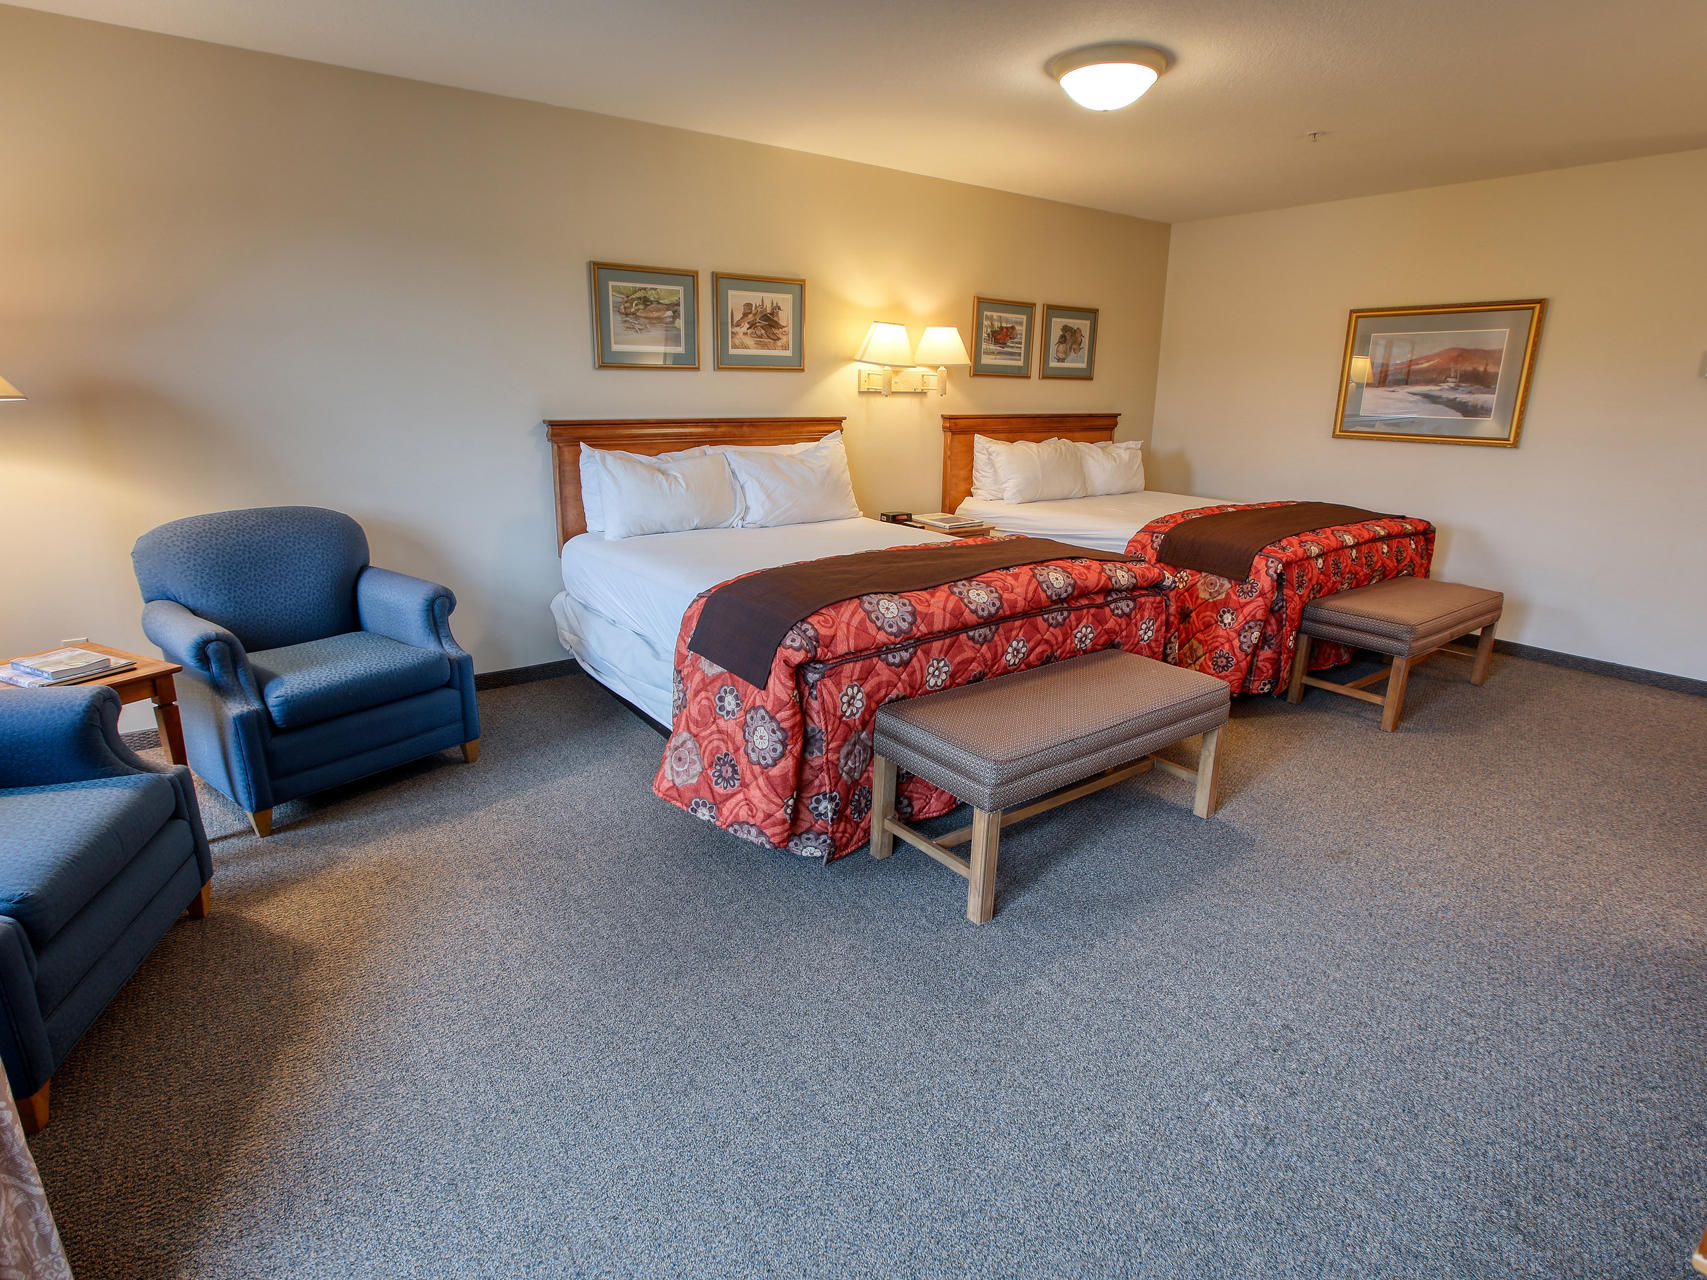 Bed area view of Deluxe corner room at Bear Lodge